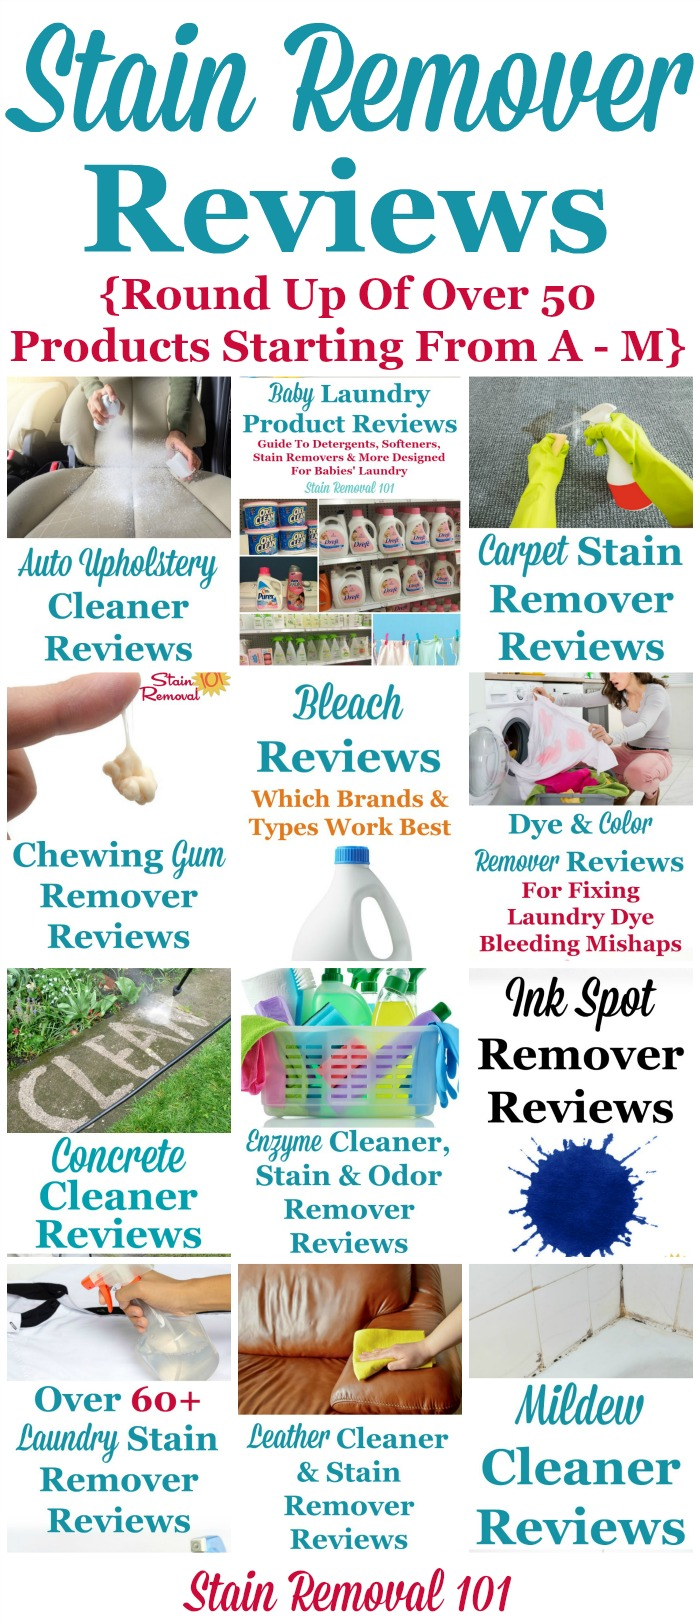 Here is a round up of over 50 stain remover reviews, for products from A through M in the alphabet, to find out which products work best, and which don't {on Stain Removal 101} #StainRemover #SpotRemover #StainRemovers